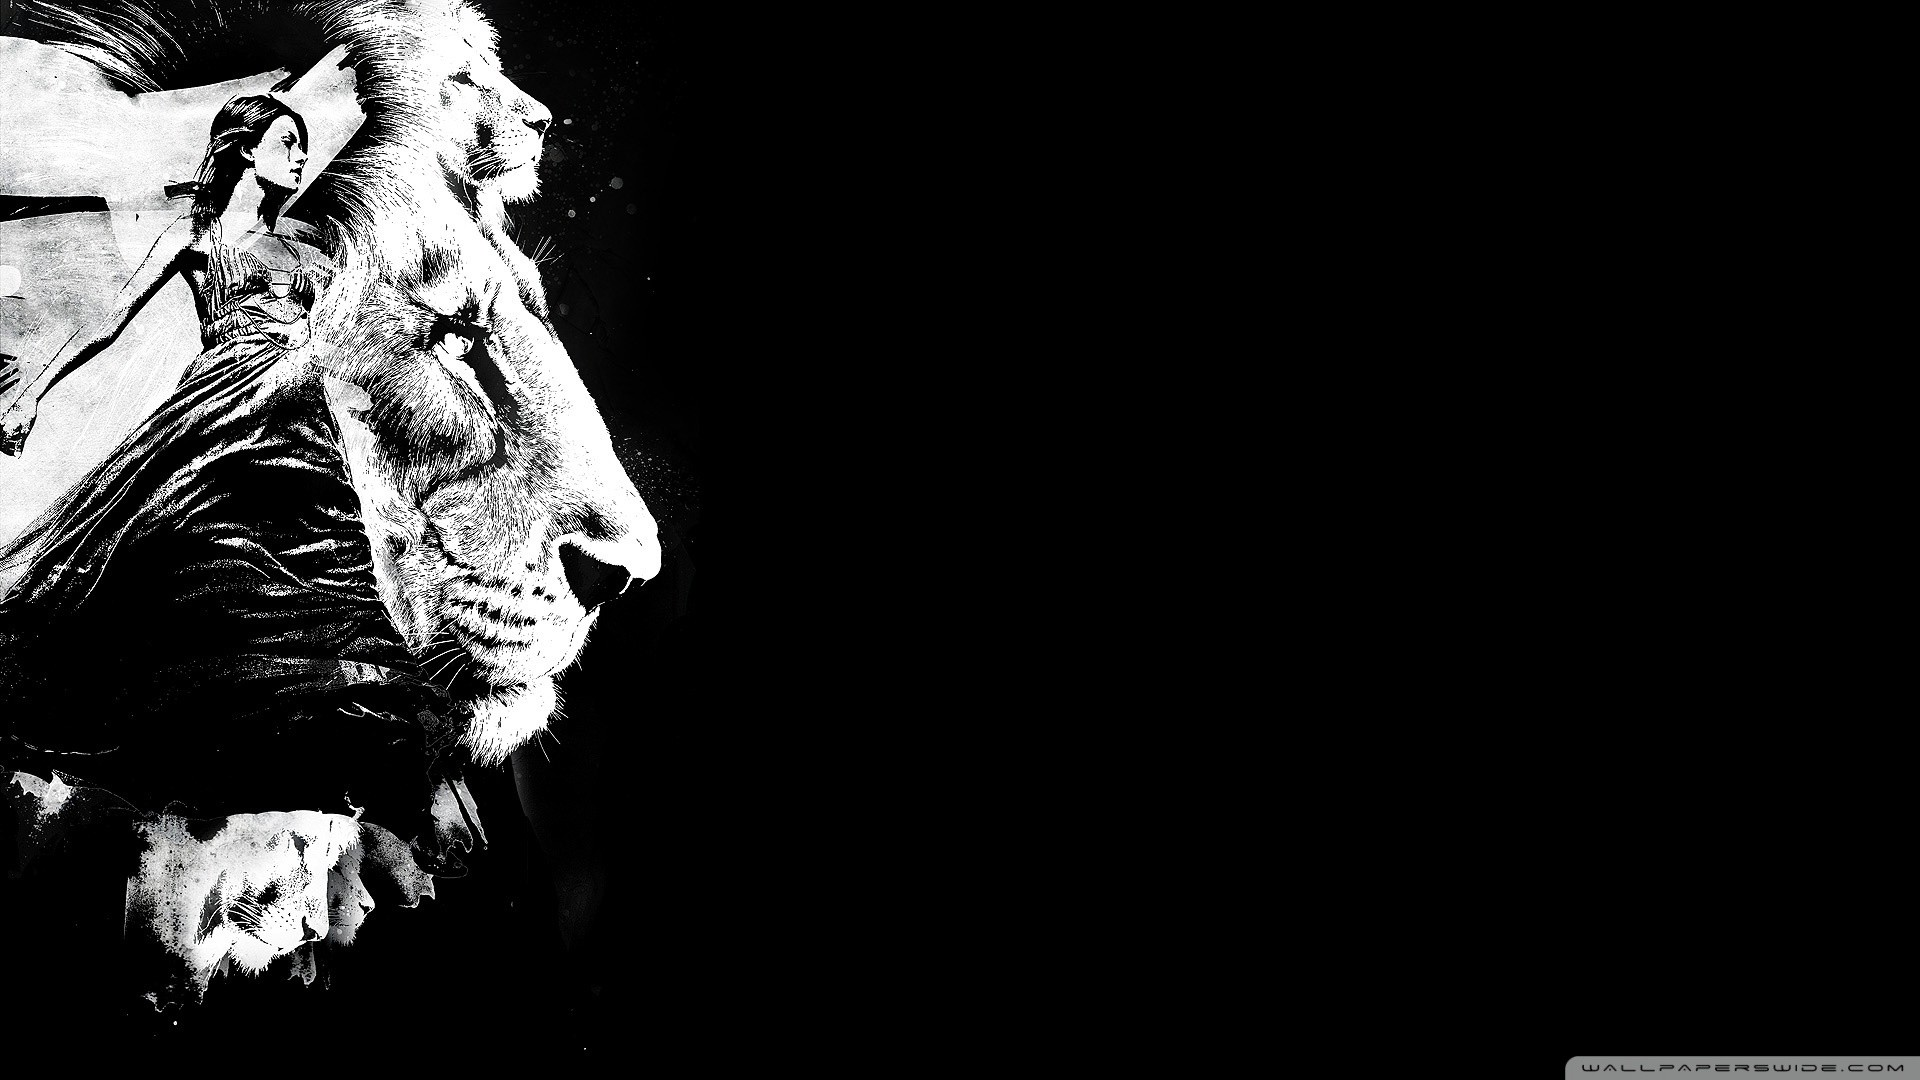 Lion Wallpaper Black and White 50 images